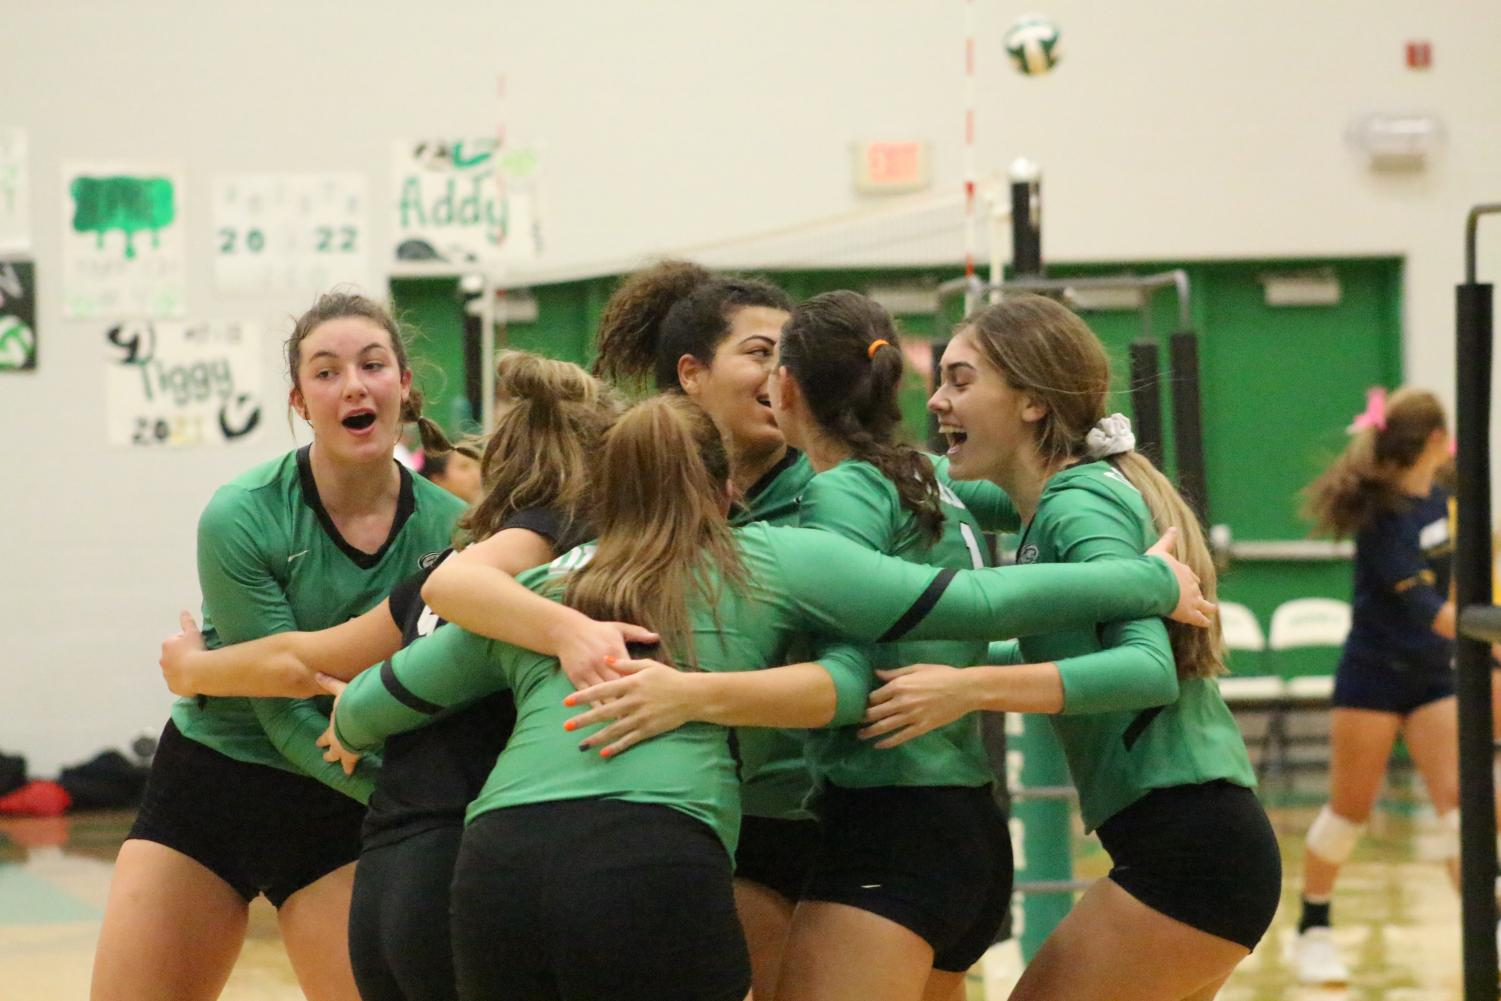 The+team+celebrates+after+scoring+the+winning+point+during+the+first+set+against+Washburn+Rural